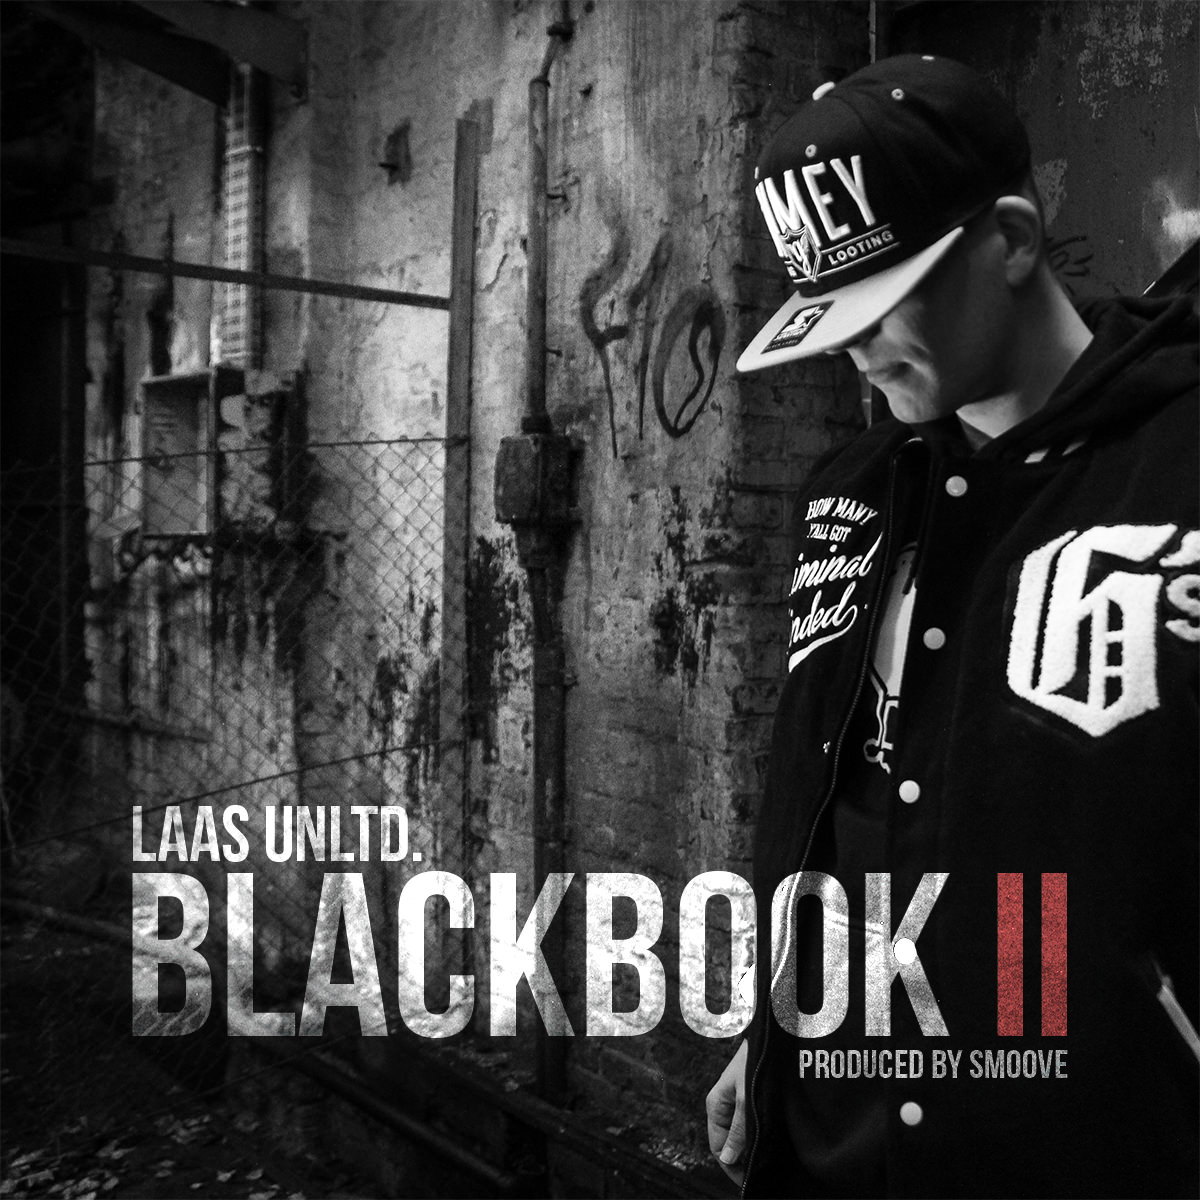 Laas Unltd. – Blackbook 2 Album Cover